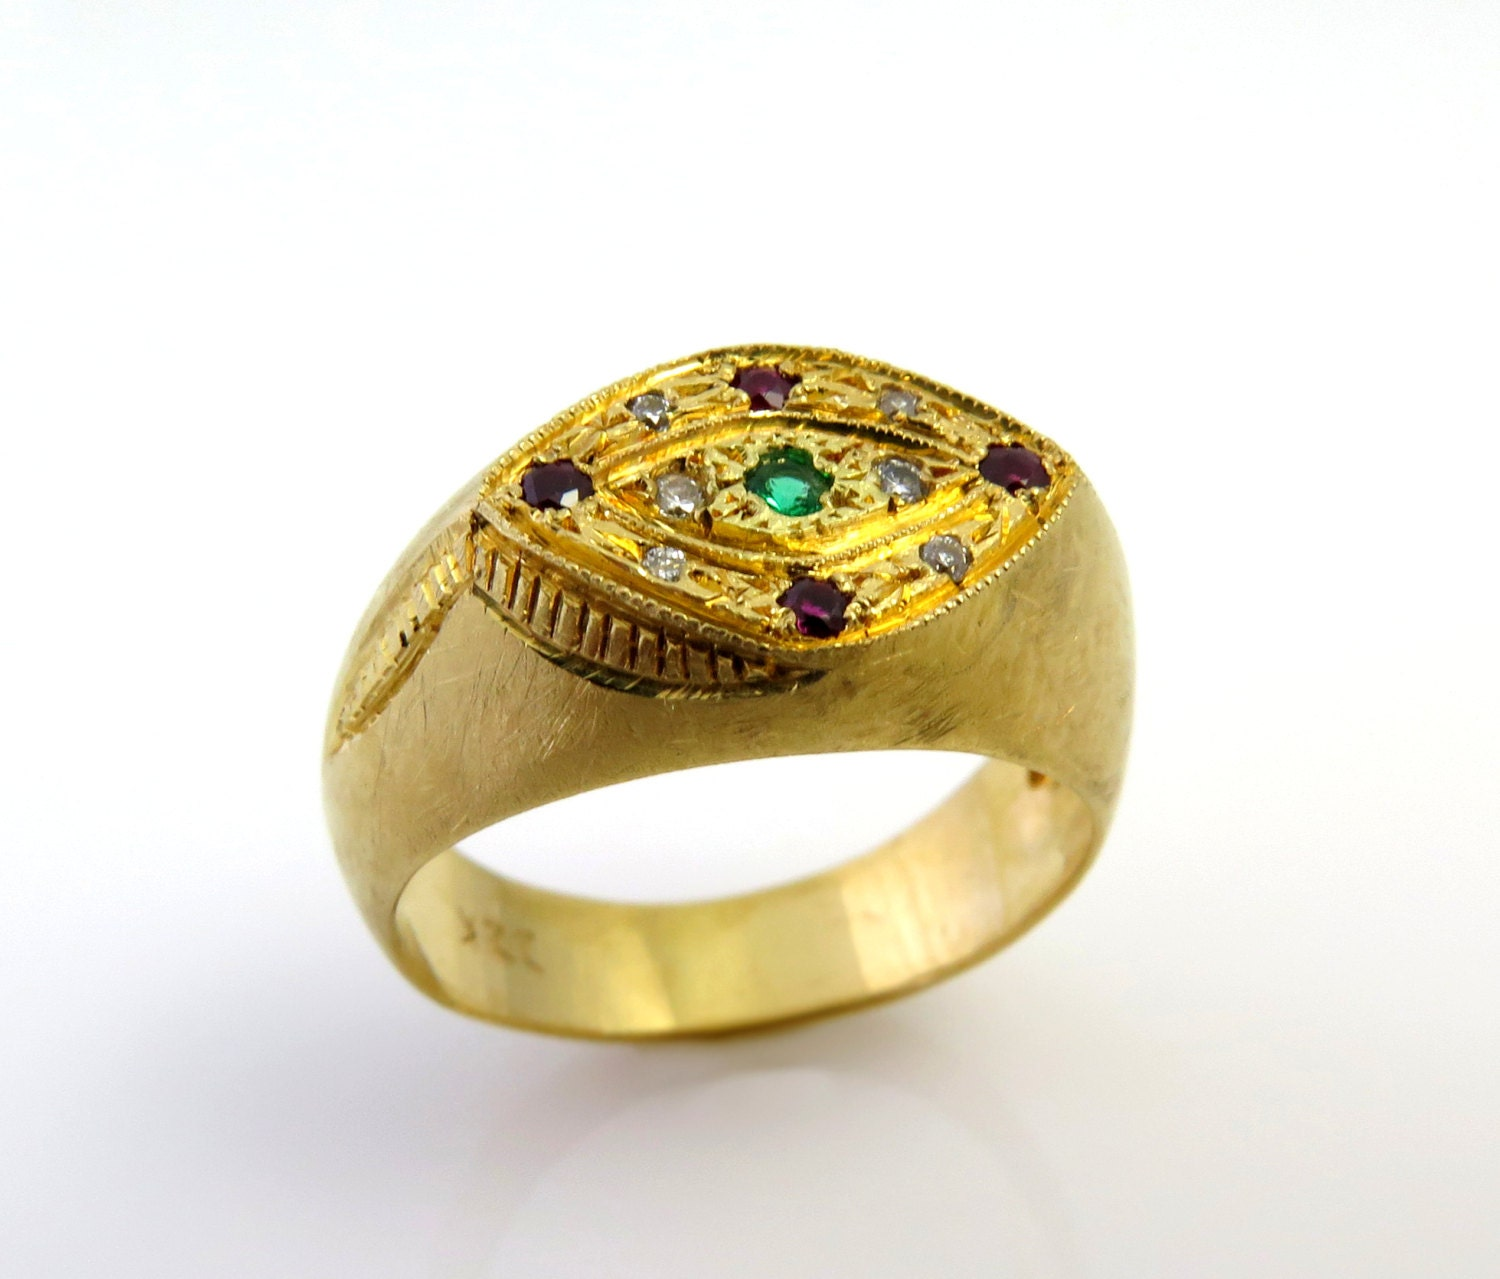 rings ring gms shopping jewelry online gold wt india